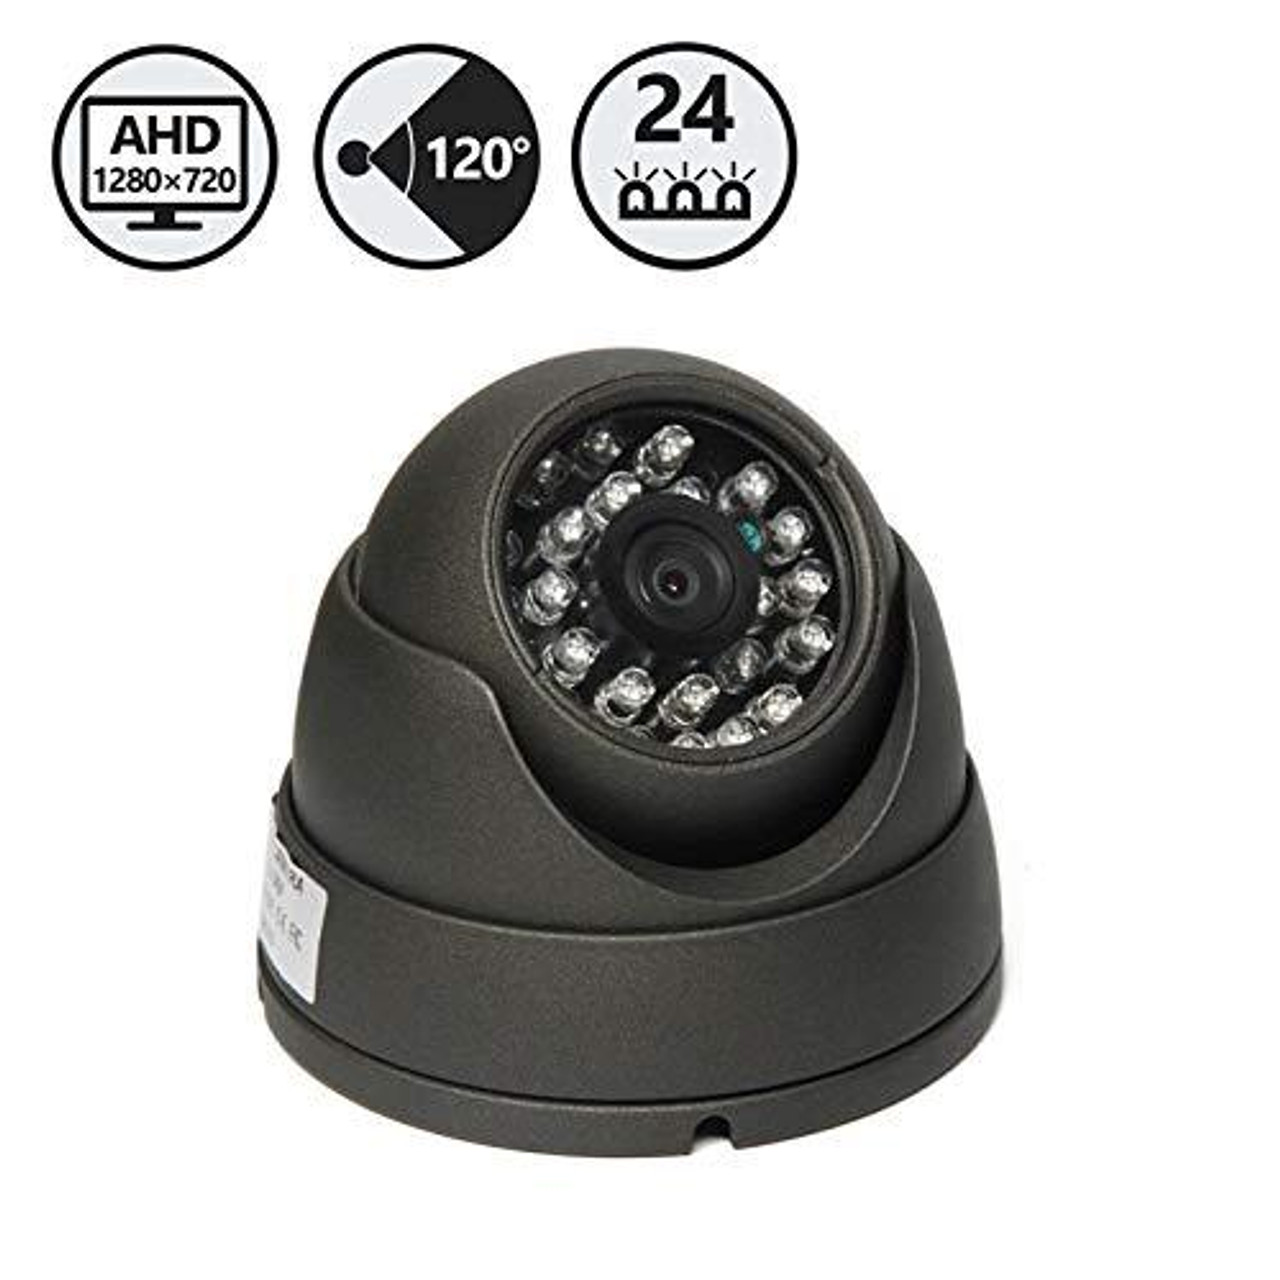 AHD 120° -  Dome Camera,66' Cable